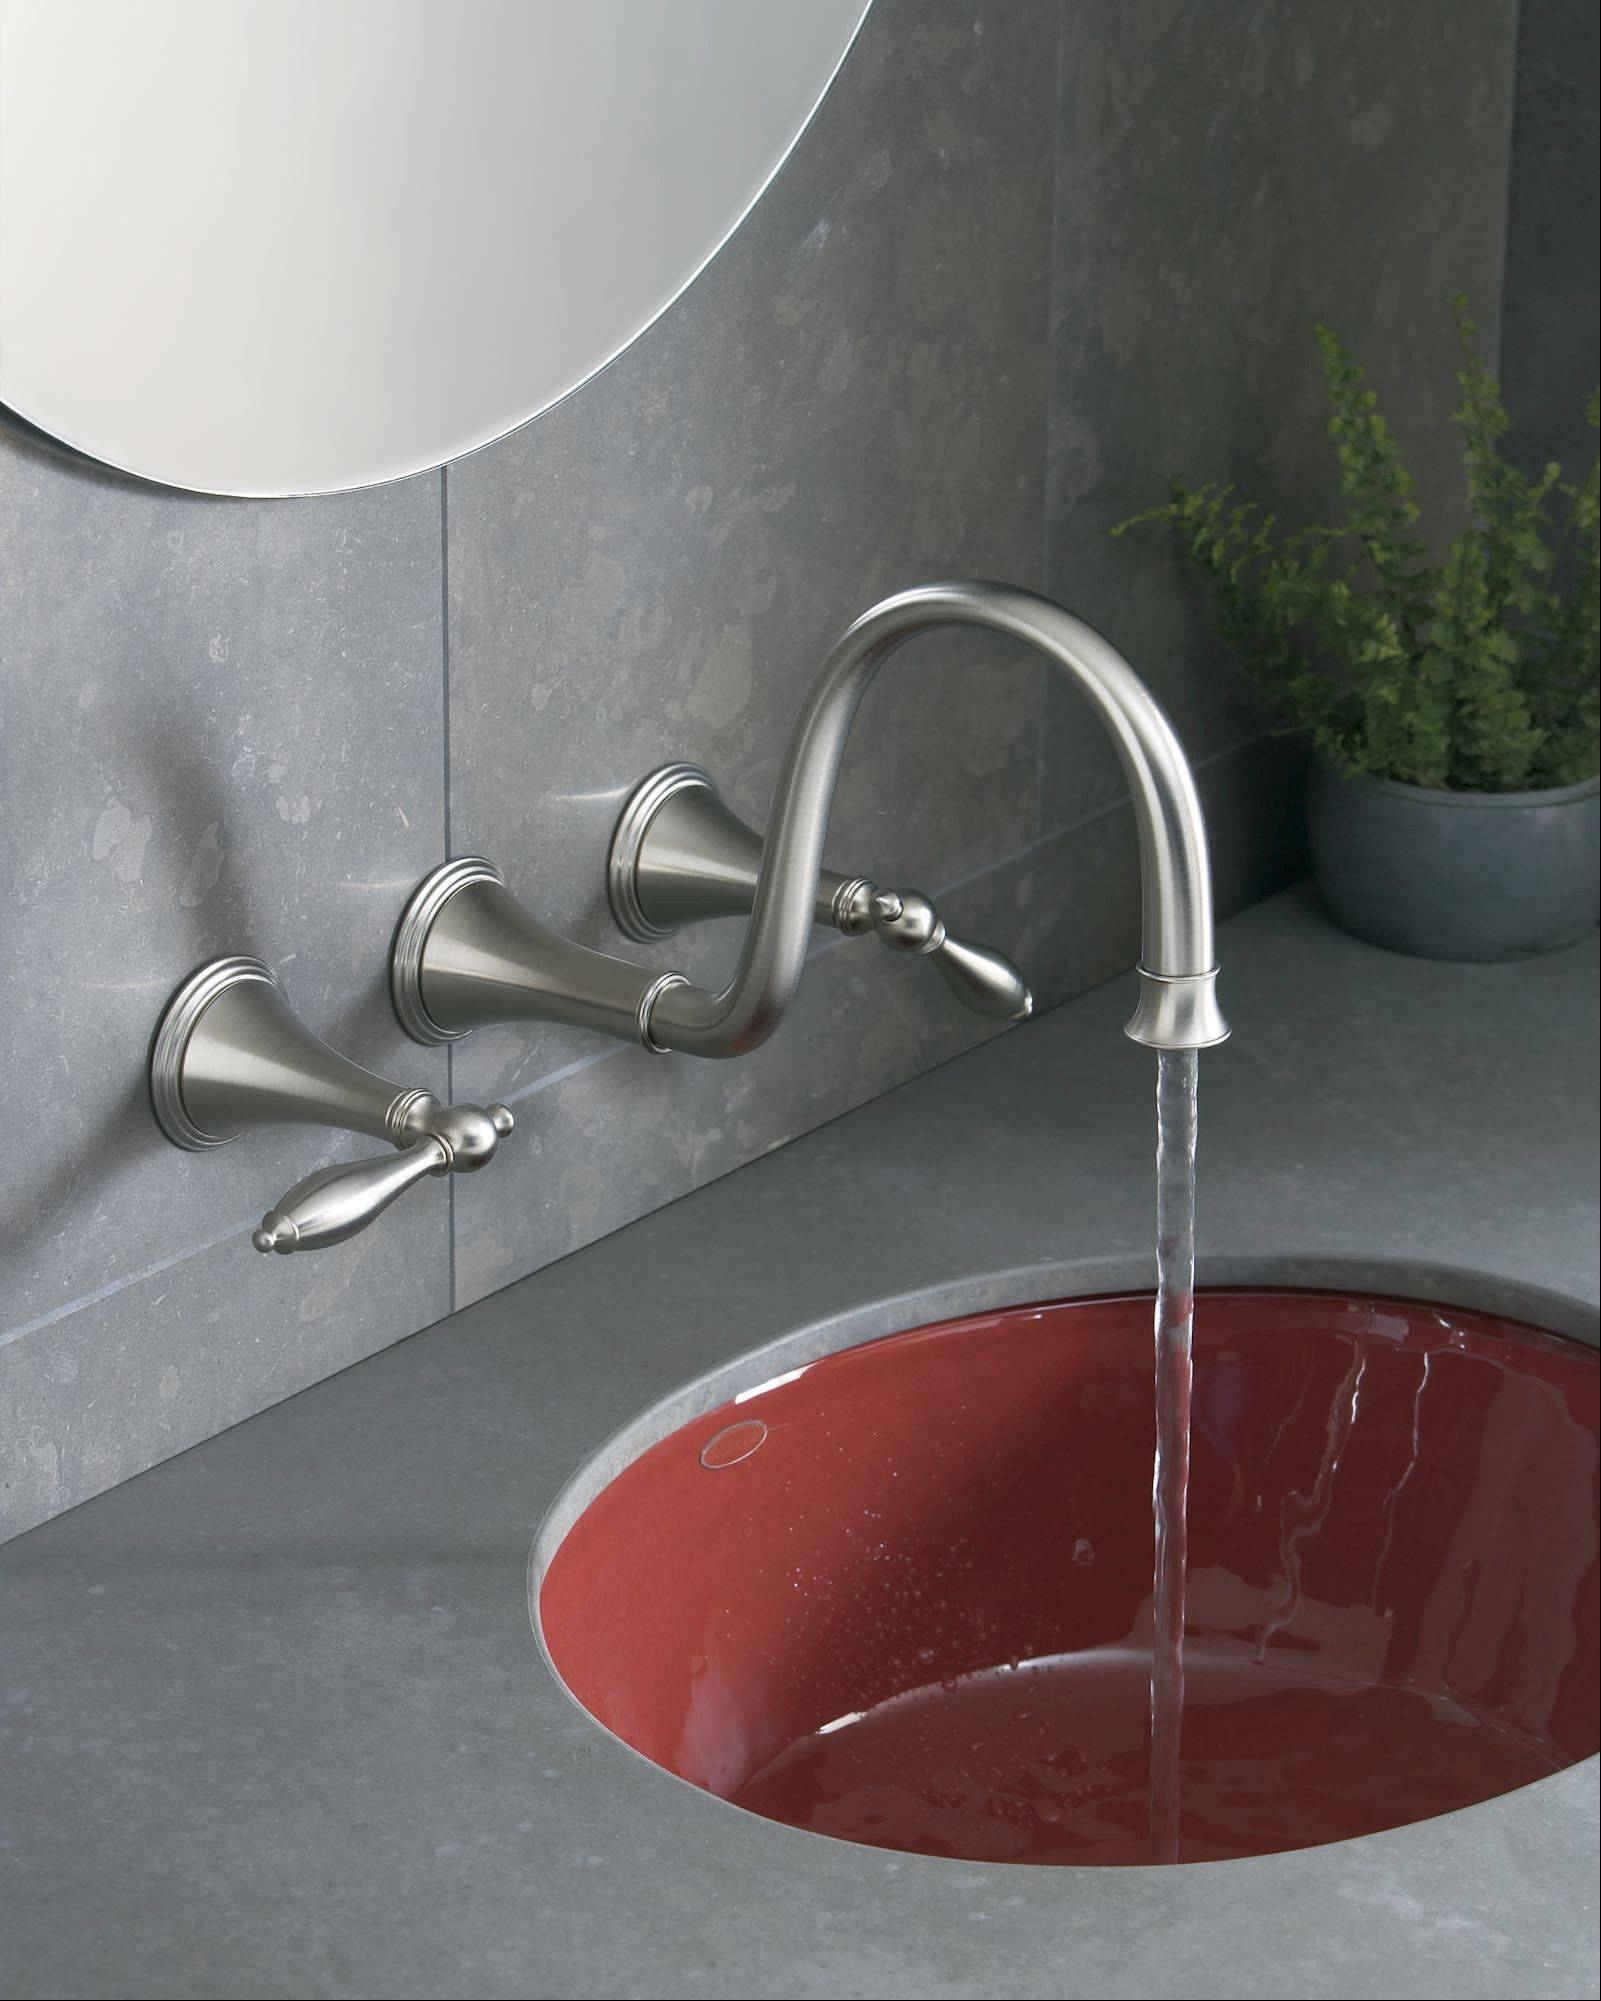 Wall-mounted bathroom faucets provide a very trendy look and can make it easier to clean the sink or counter, since the entire faucet is raised off the deck.